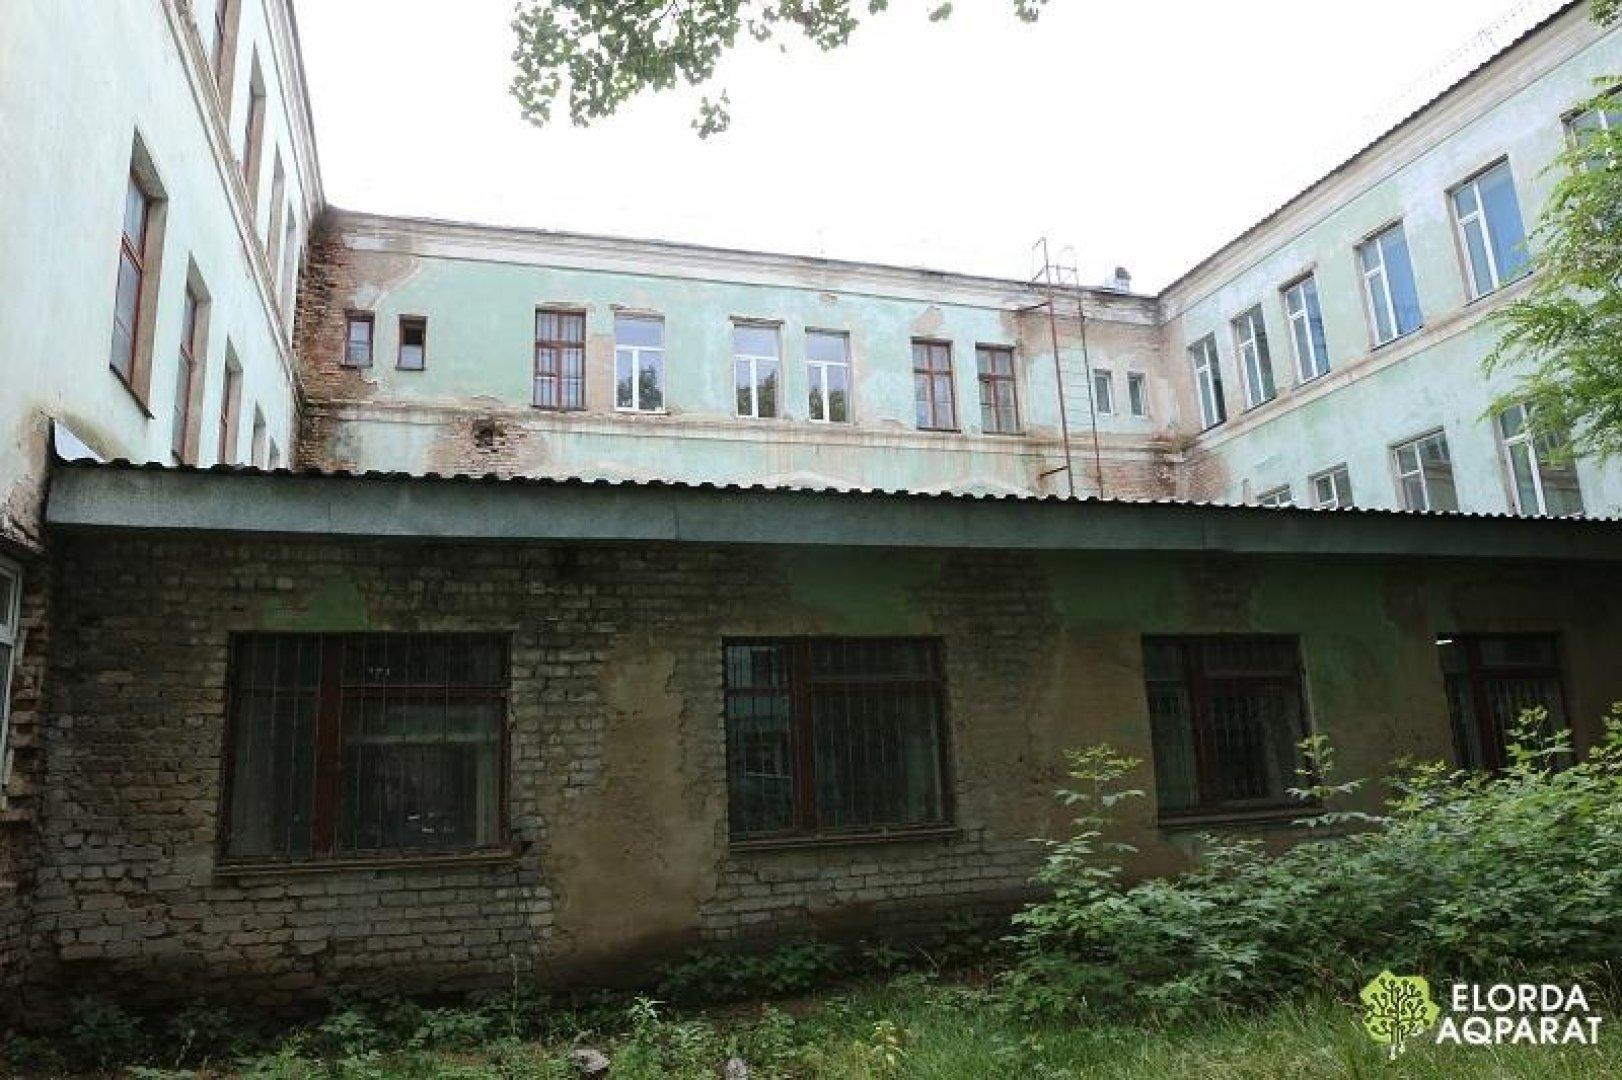 57949cdfc7a45bddbb80fe2225965409 - In the center of Eurasia, the hospital has not been renovated for 60 years — Tokayev